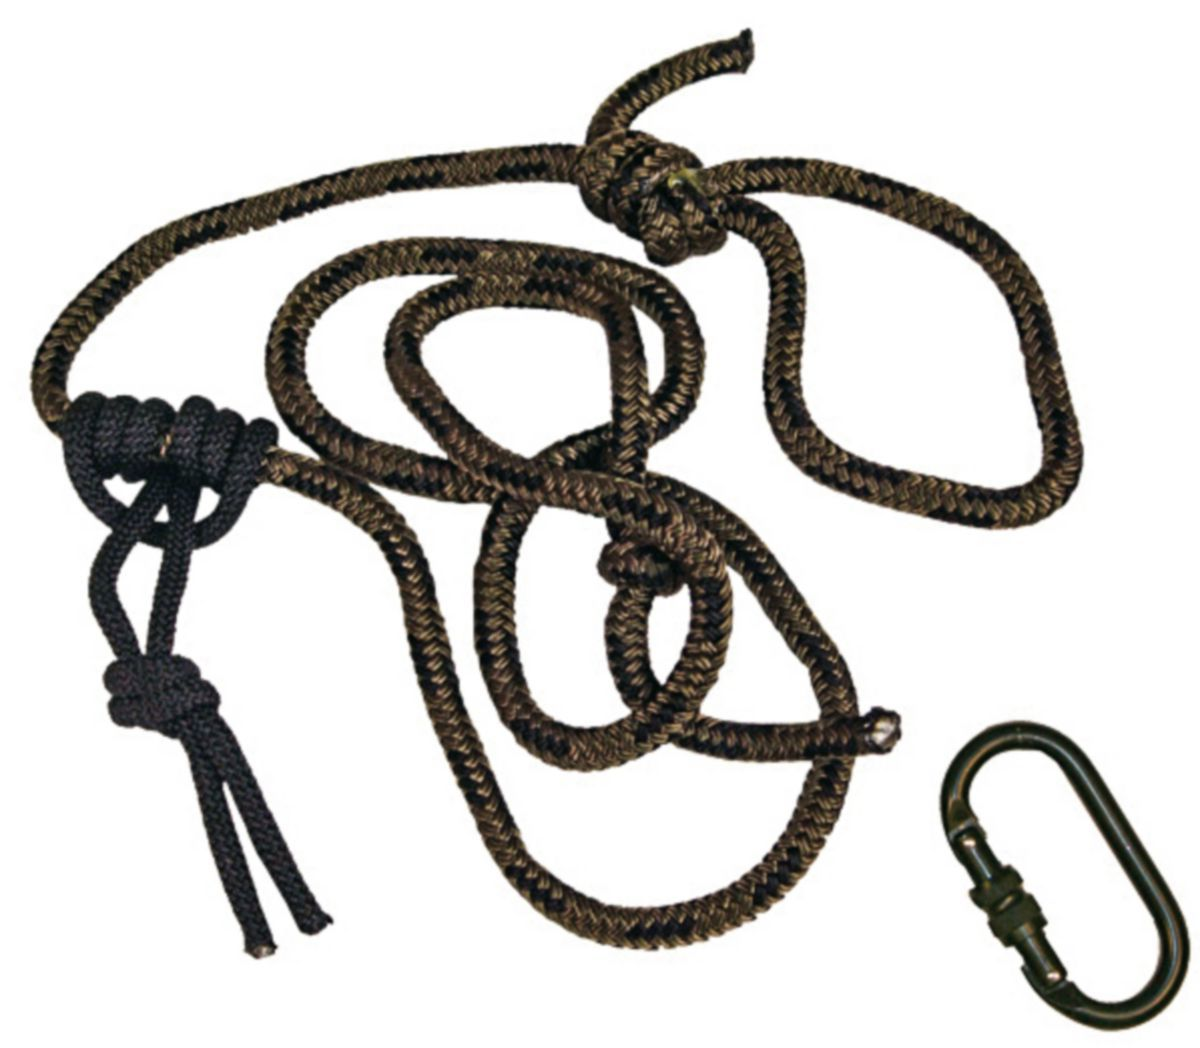 Summit Treestands 8-Ft. Lineman's Rope with Clip